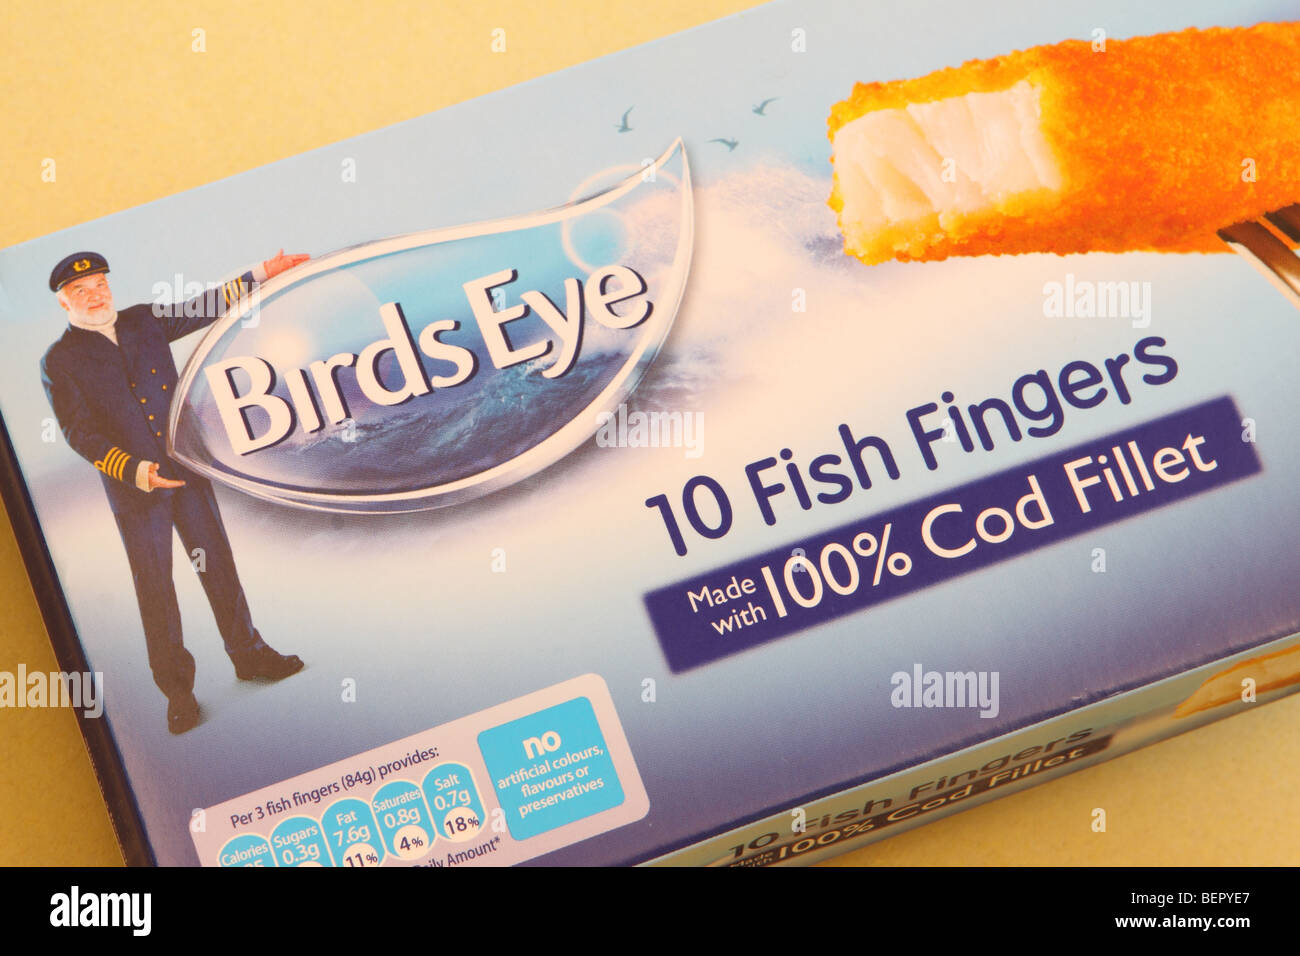 Birds Eye frozen food fish fingers packet logo design and packaging - Stock Image